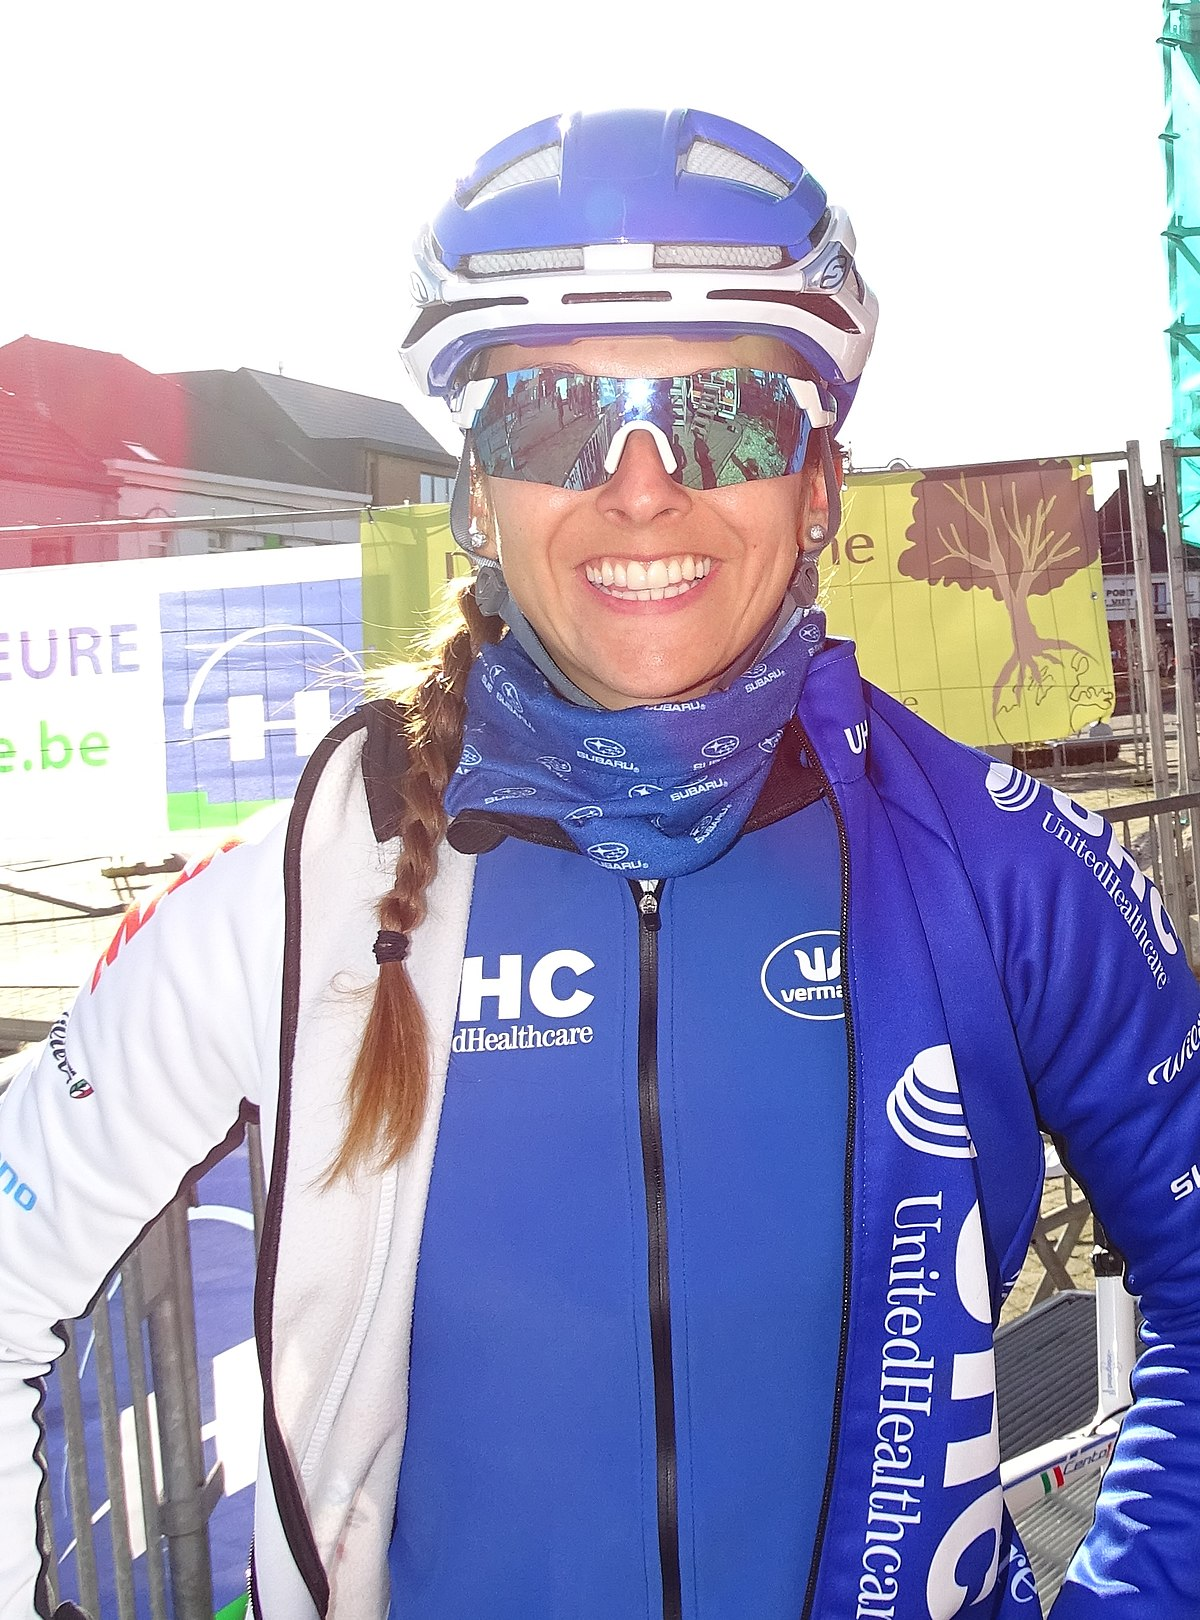 Colombian cycling team women names - Colombian Cycling Team Women Names 52